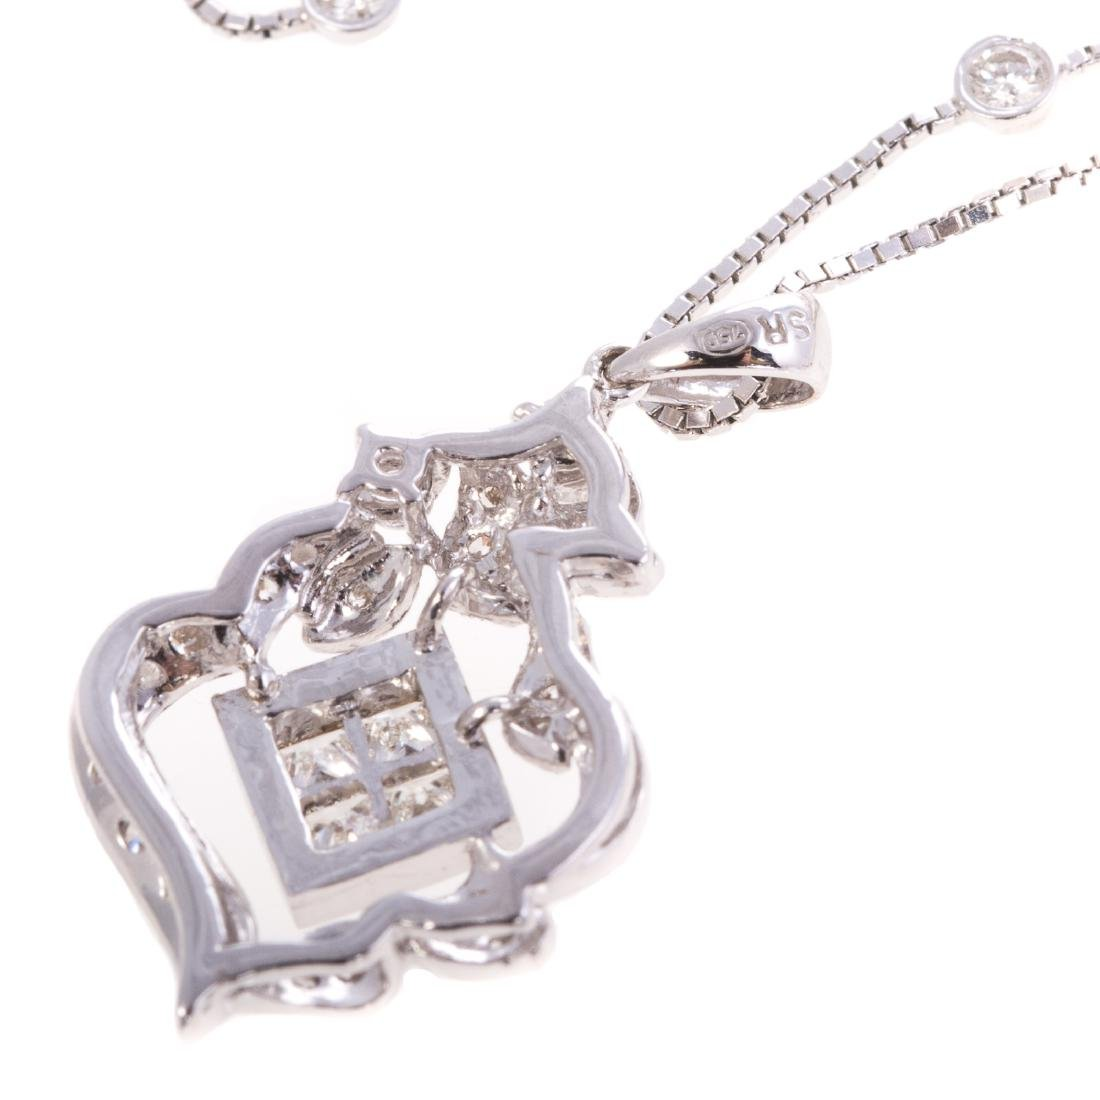 A Lady's Diamond Filigree Pendant in White Gold - 4